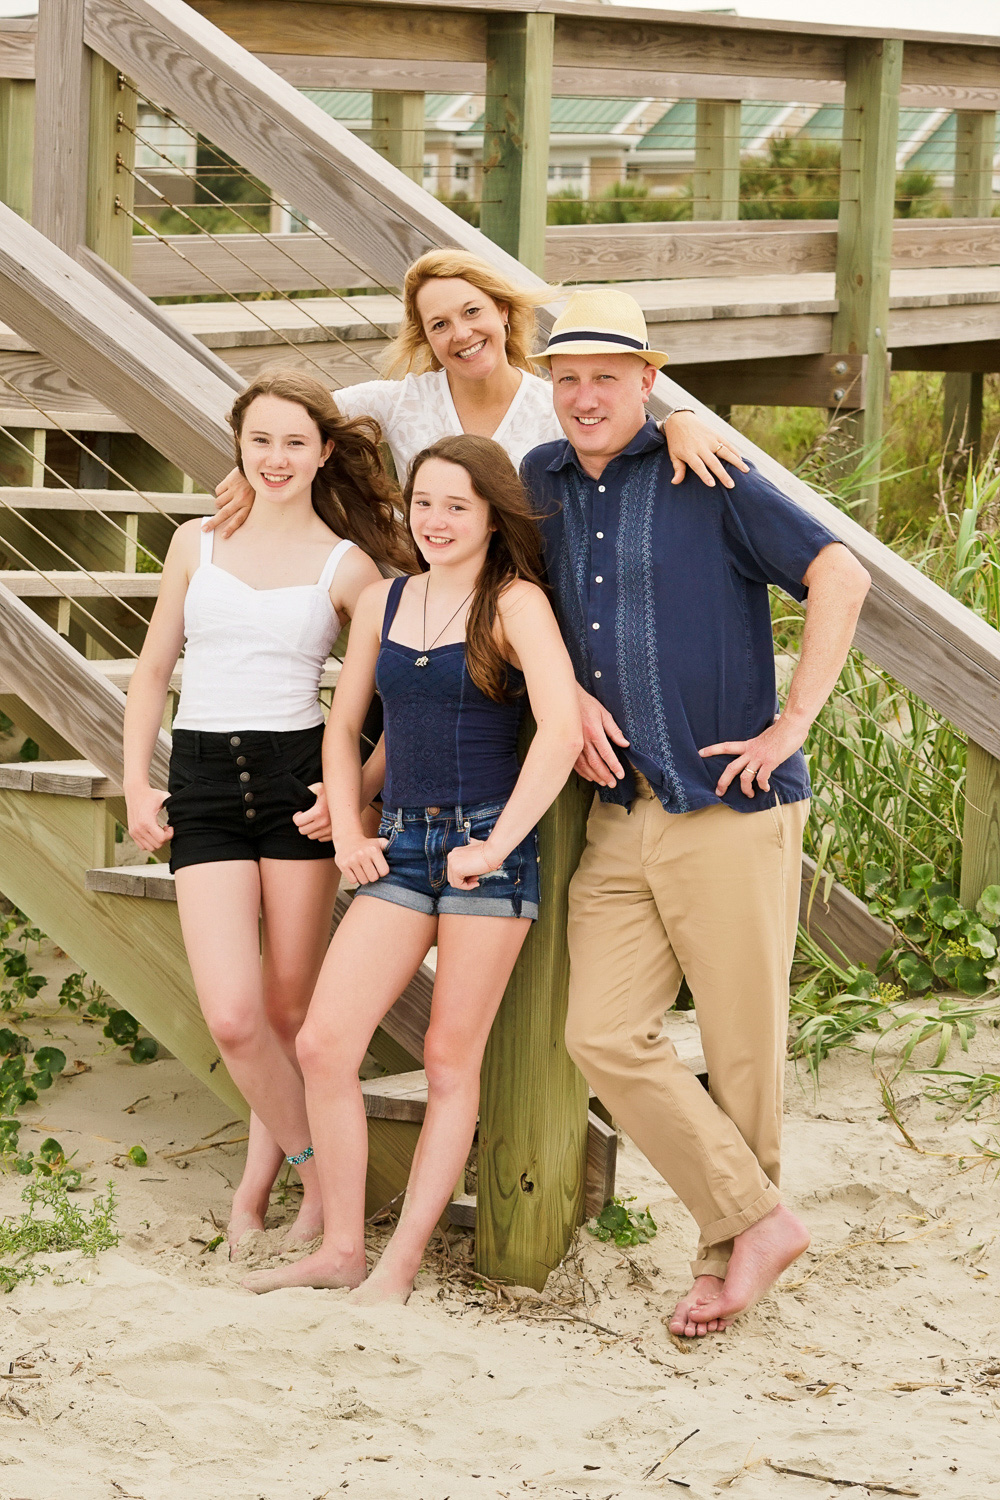 beach_portraits_beaufort-110.jpg